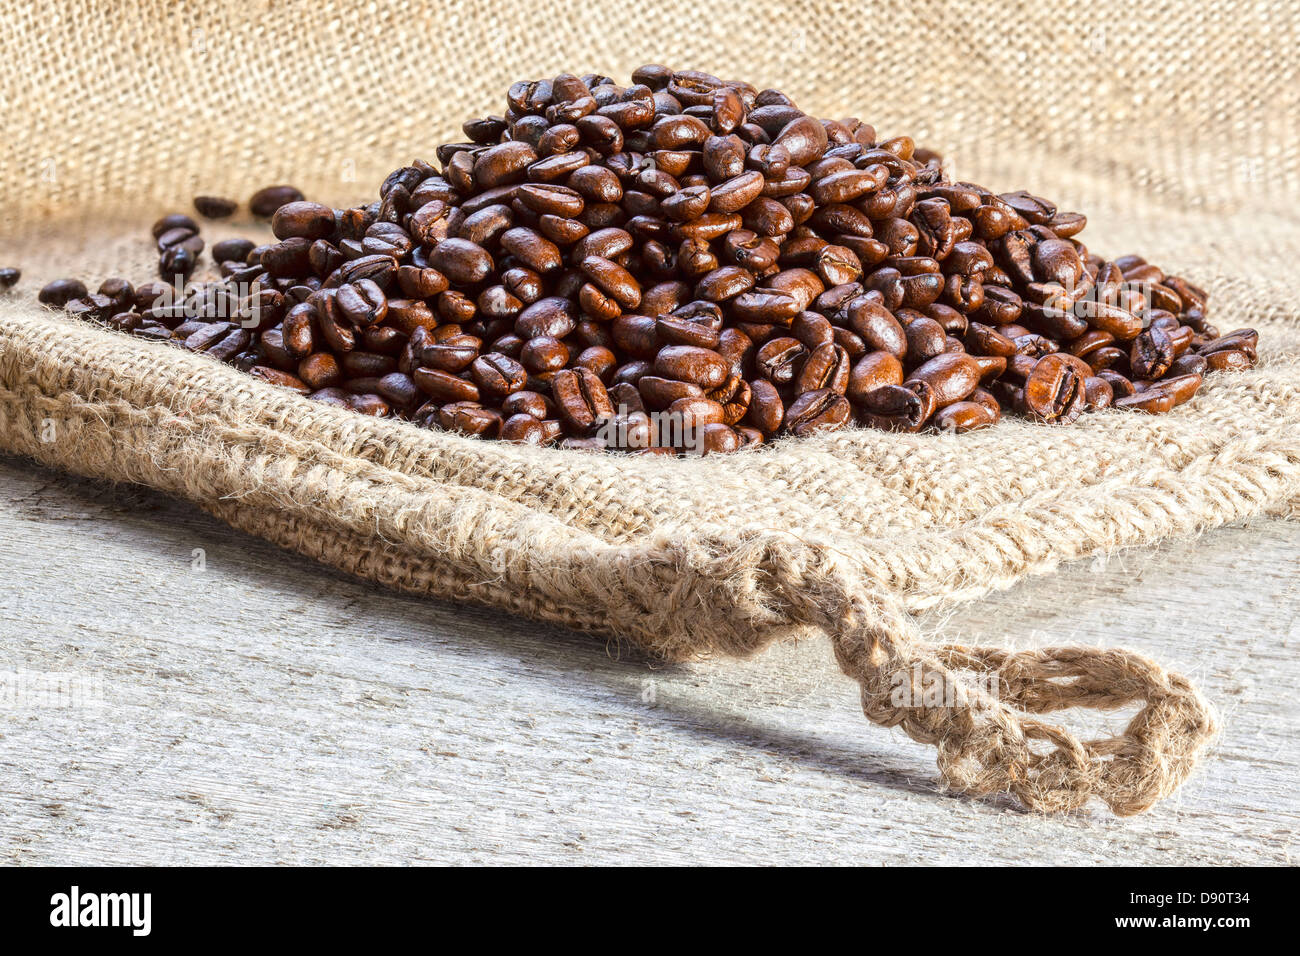 Coffee Beans on Burlap Sack - heap of roasted coffee beans on a burlap or jute sack. - Stock Image